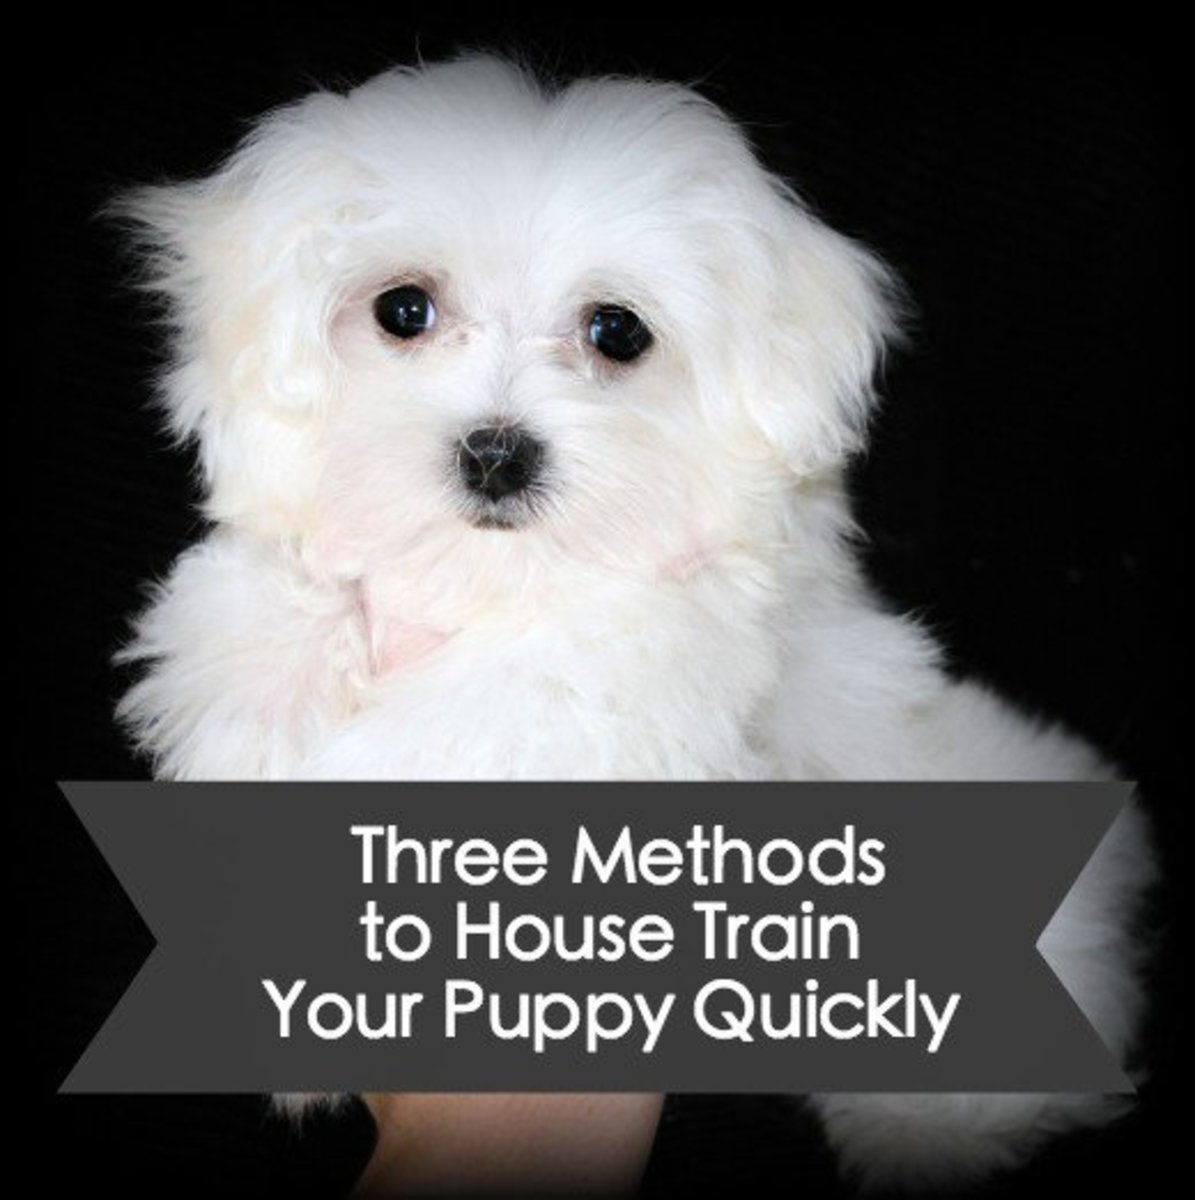 How to House Train a Puppy Fast: Three Training Methods to Try